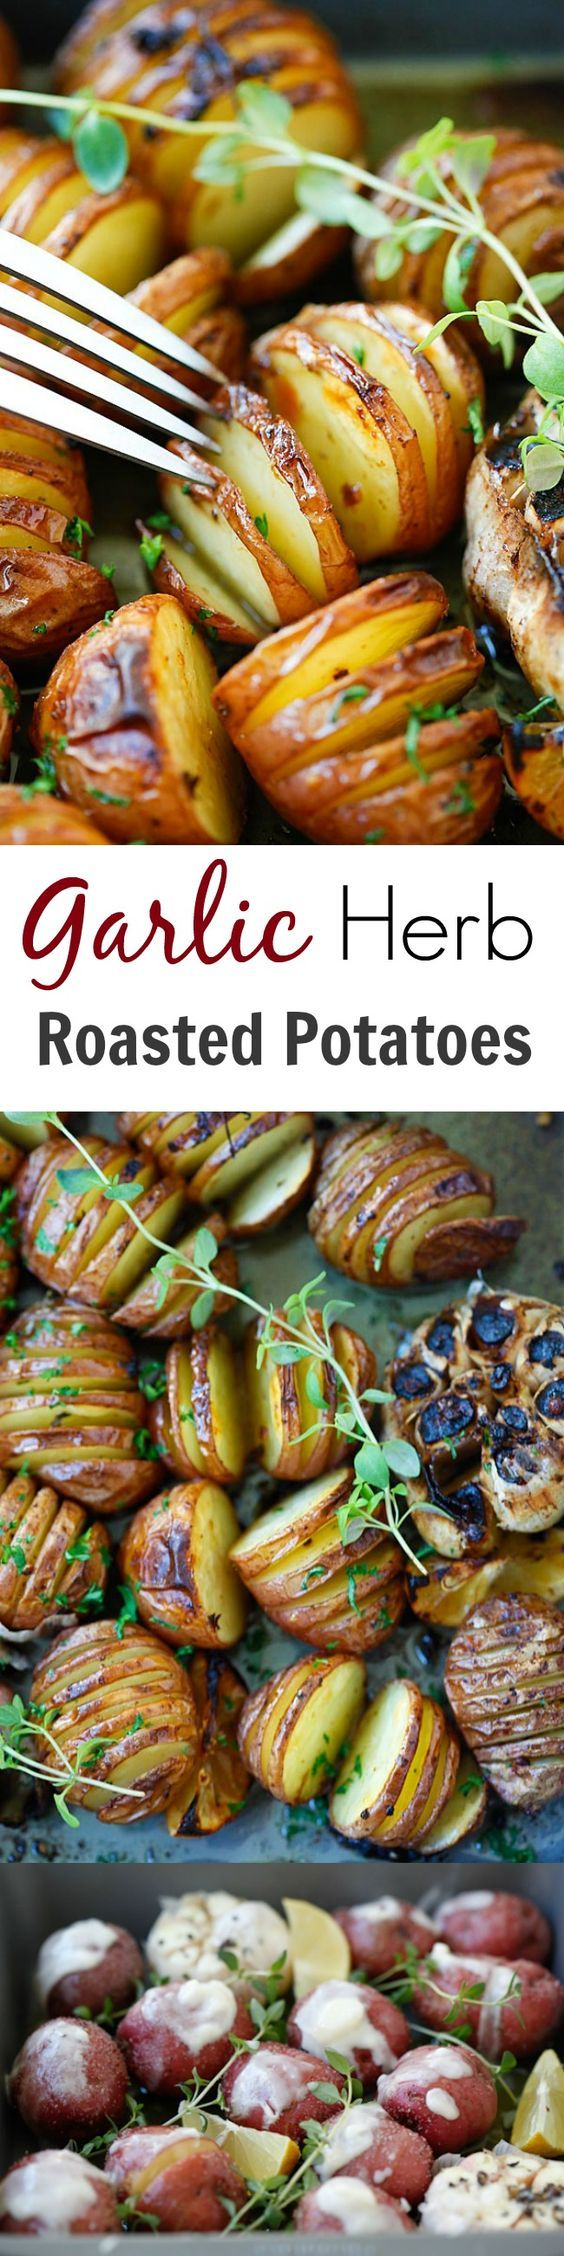 Garlic Herb Roasted Potatoes – the easiest and delicious roasted potatoes with olive oil, butter, garlic, herb and lemon!! | rasamalaysia.com: